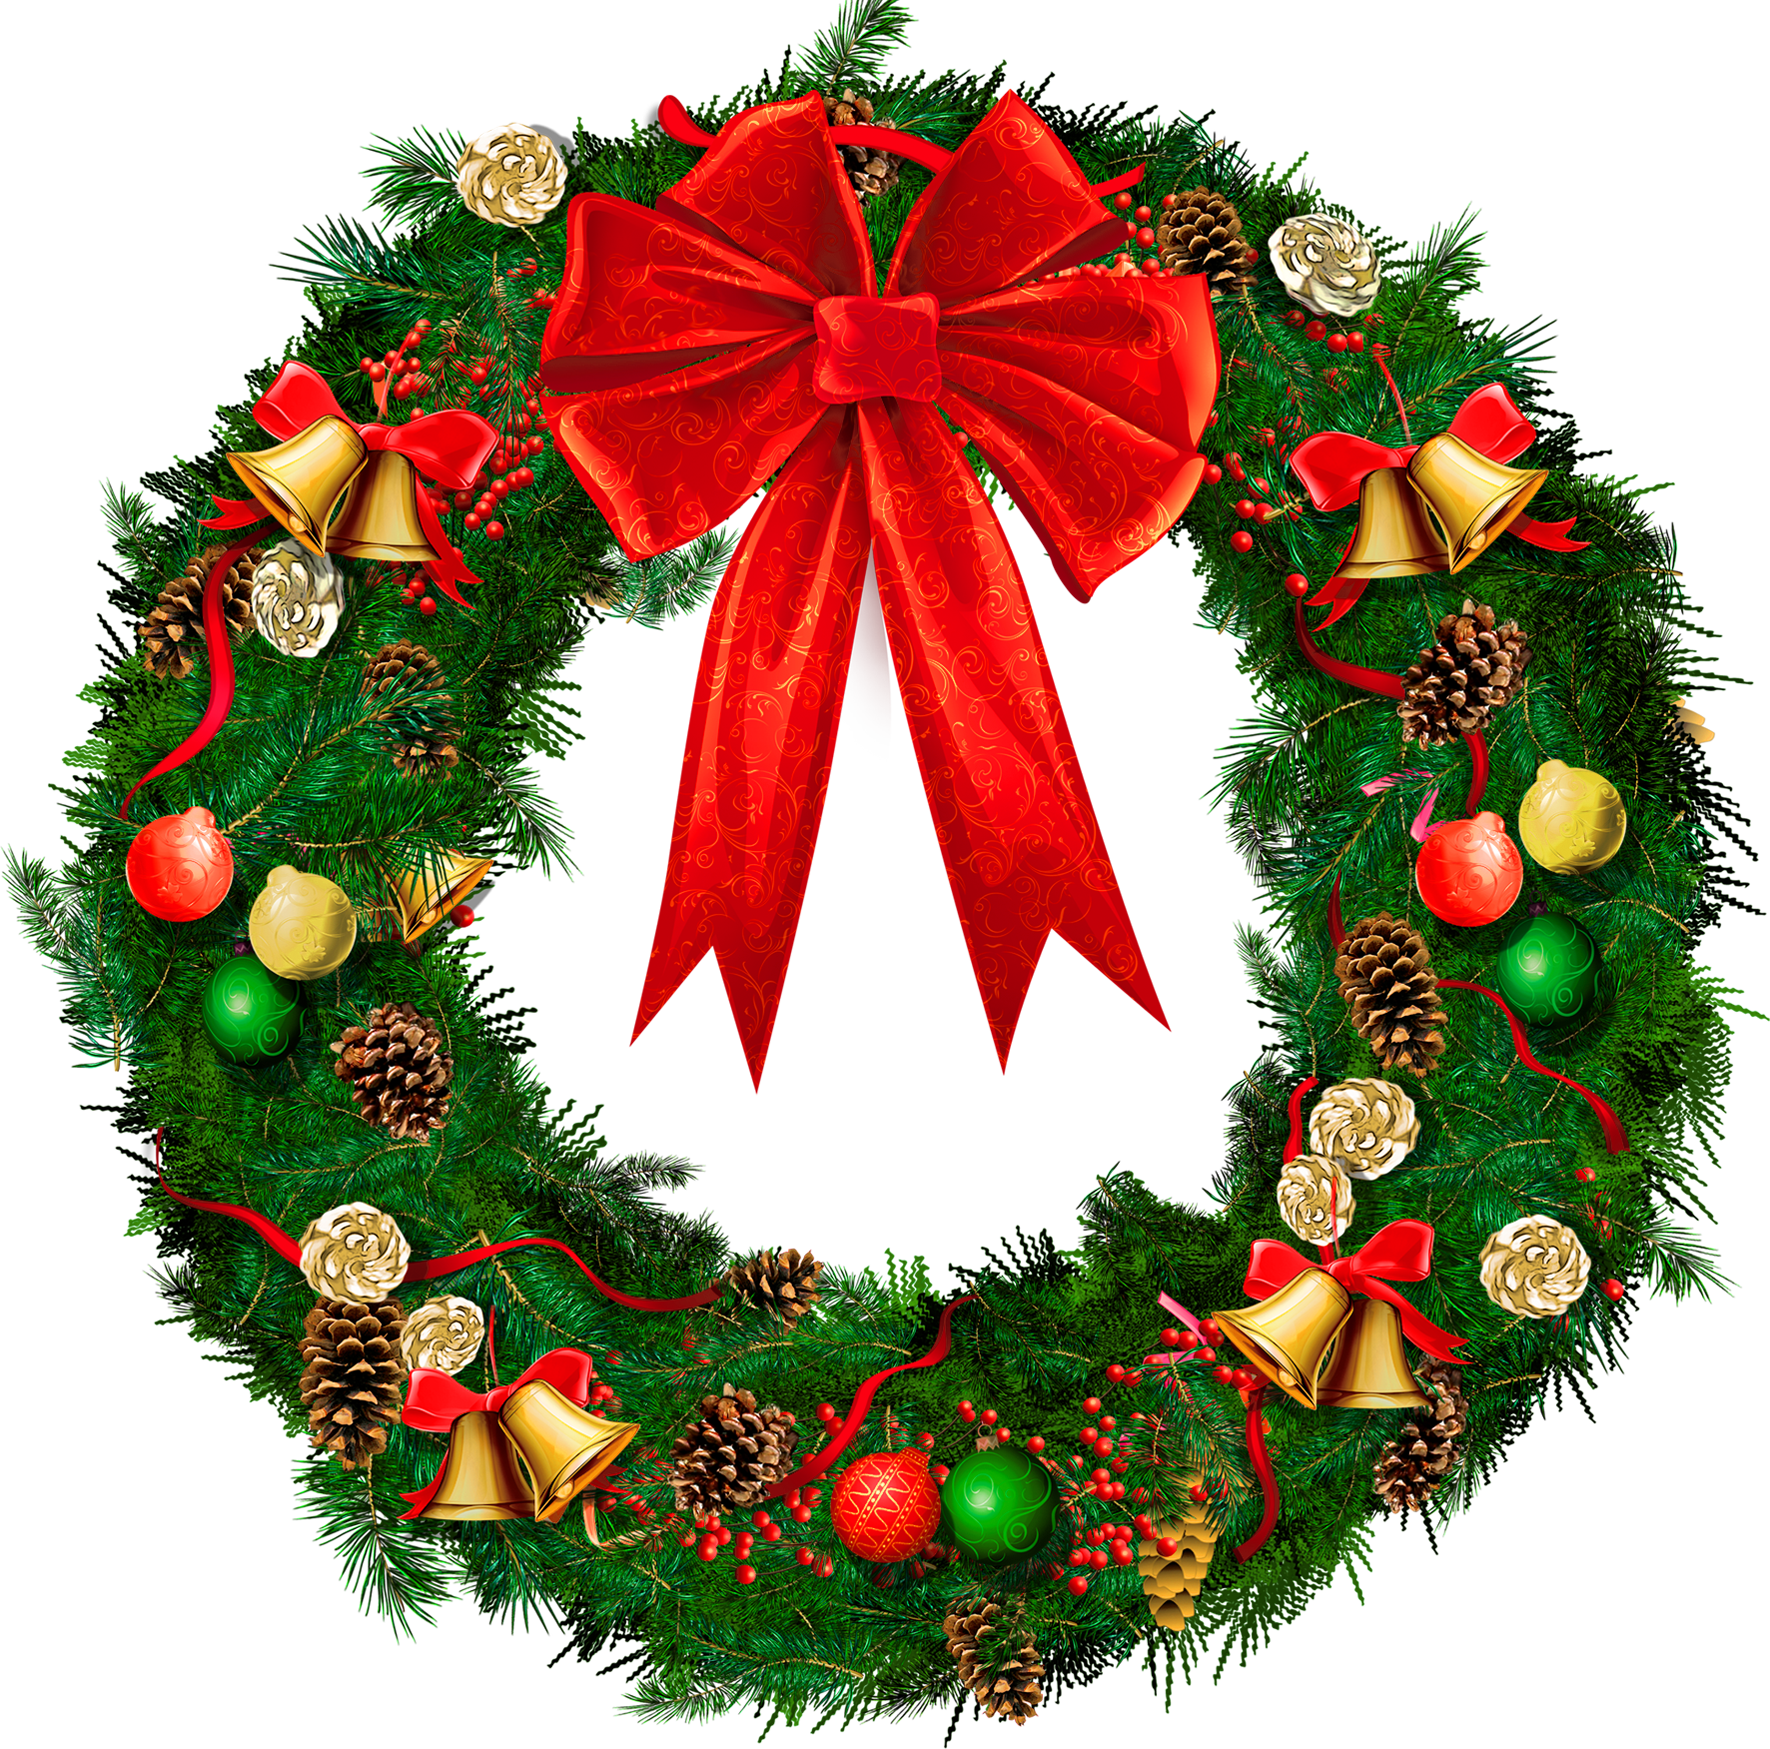 17 Christmas Wreath Graphics Images